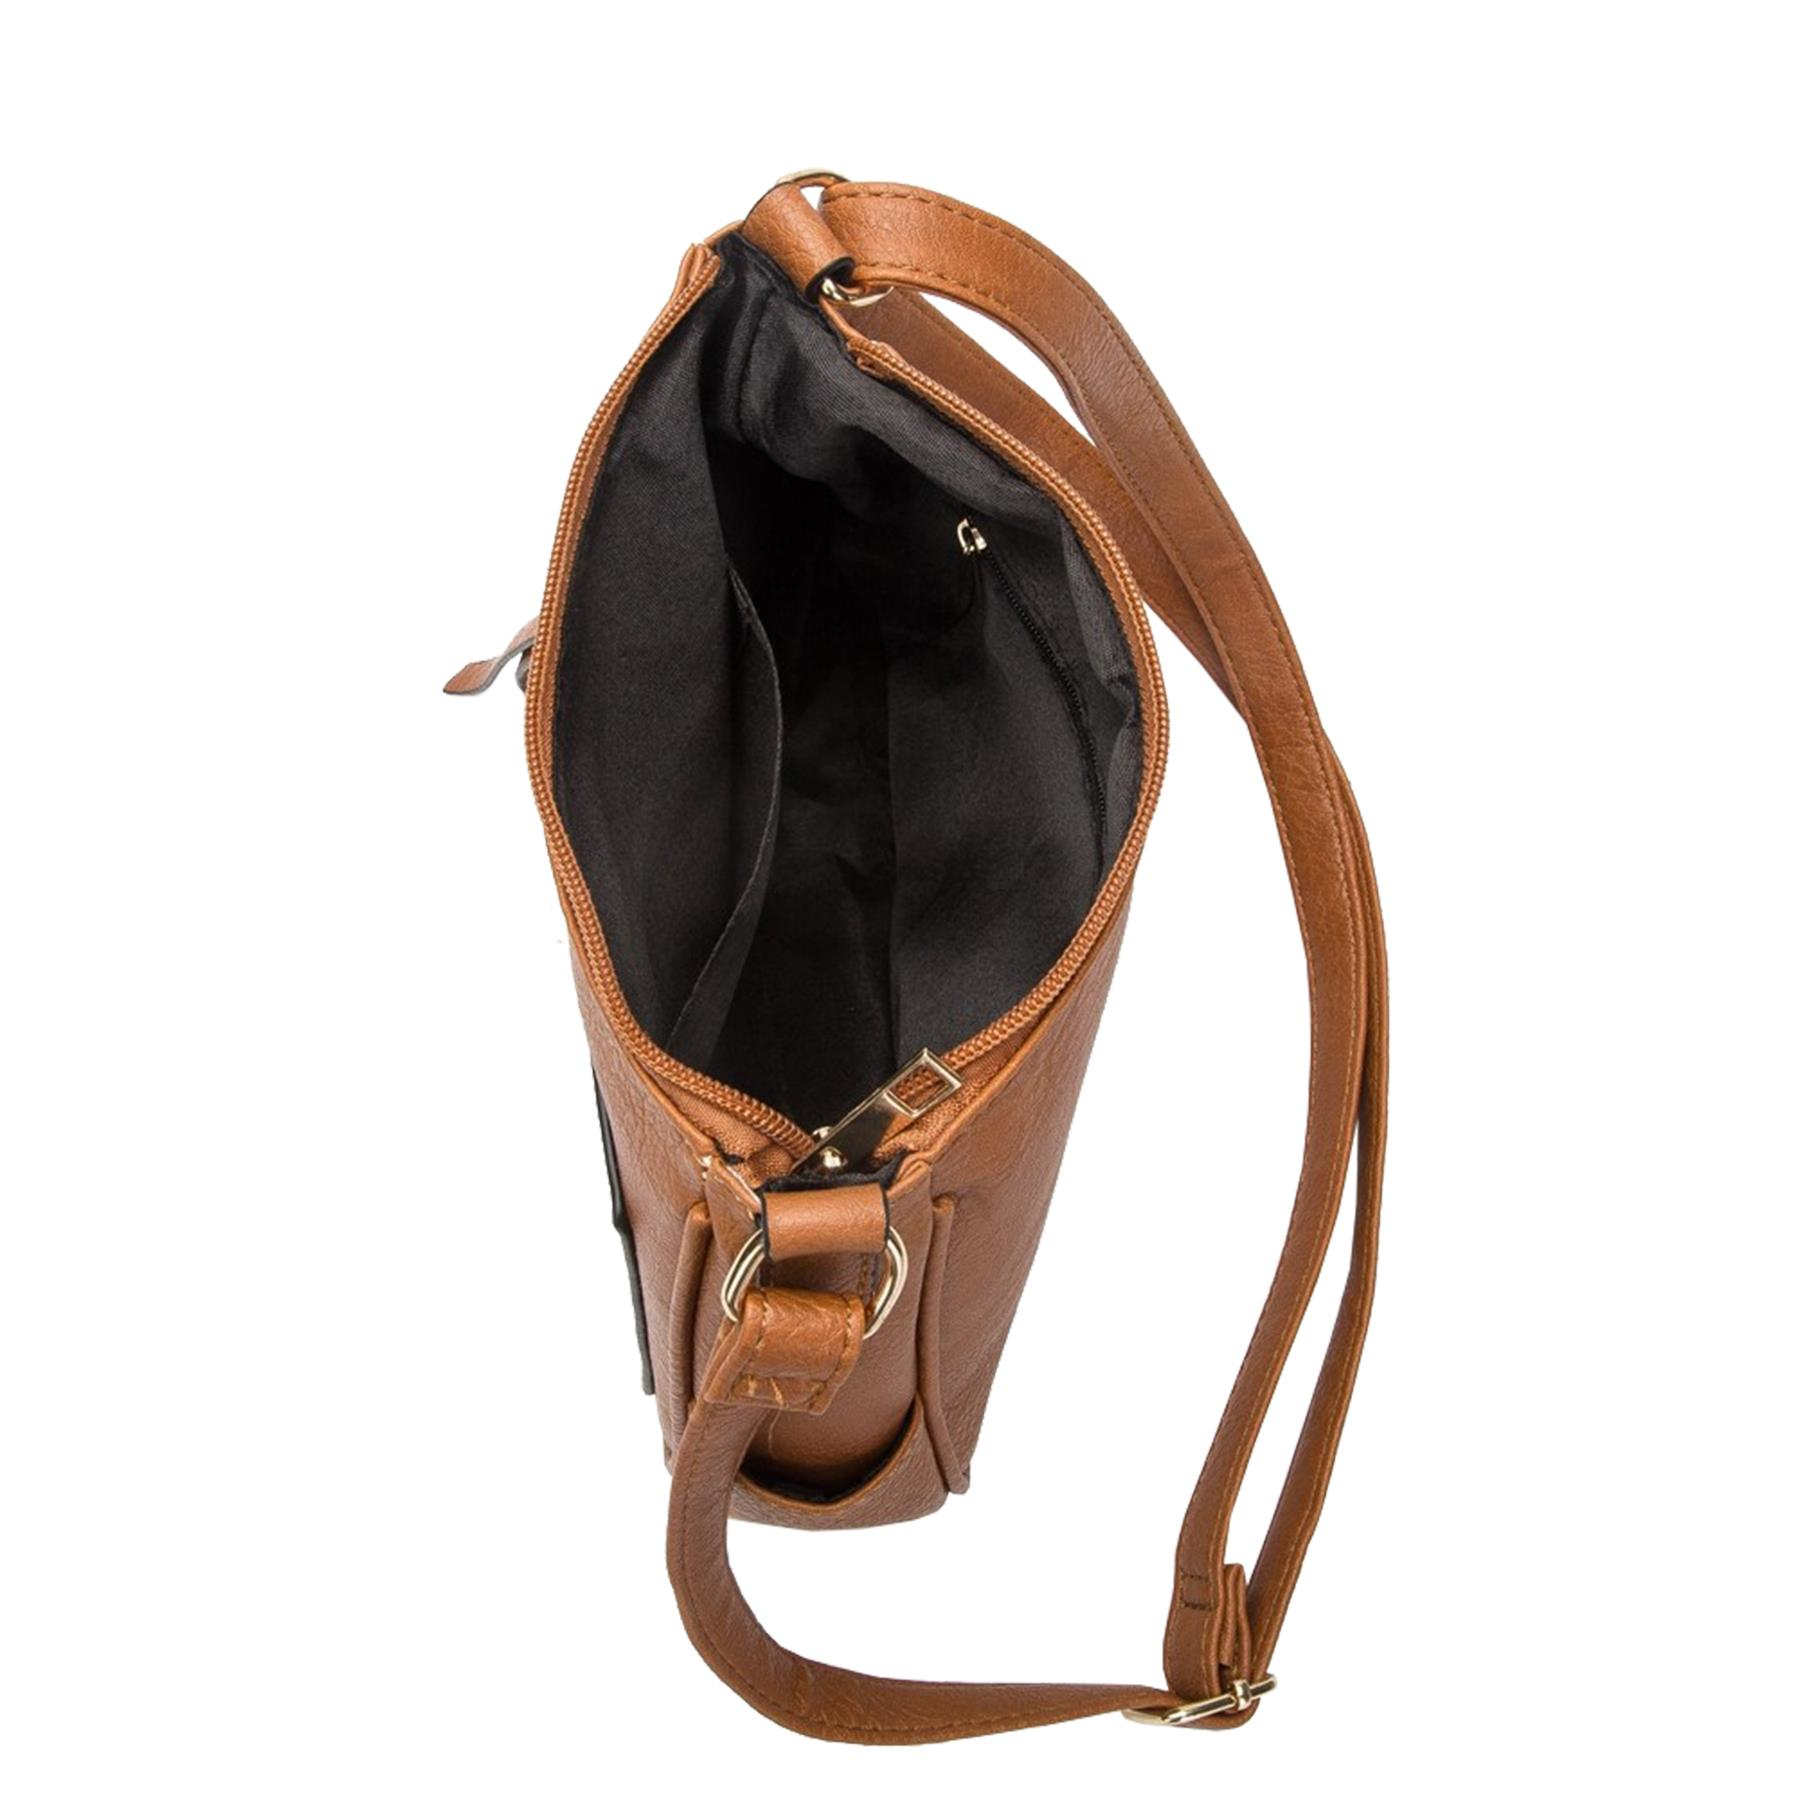 New-Women-s-Front-Zip-Faux-Leather-Basic-Small-Crossbody-Messenger-Bag thumbnail 16